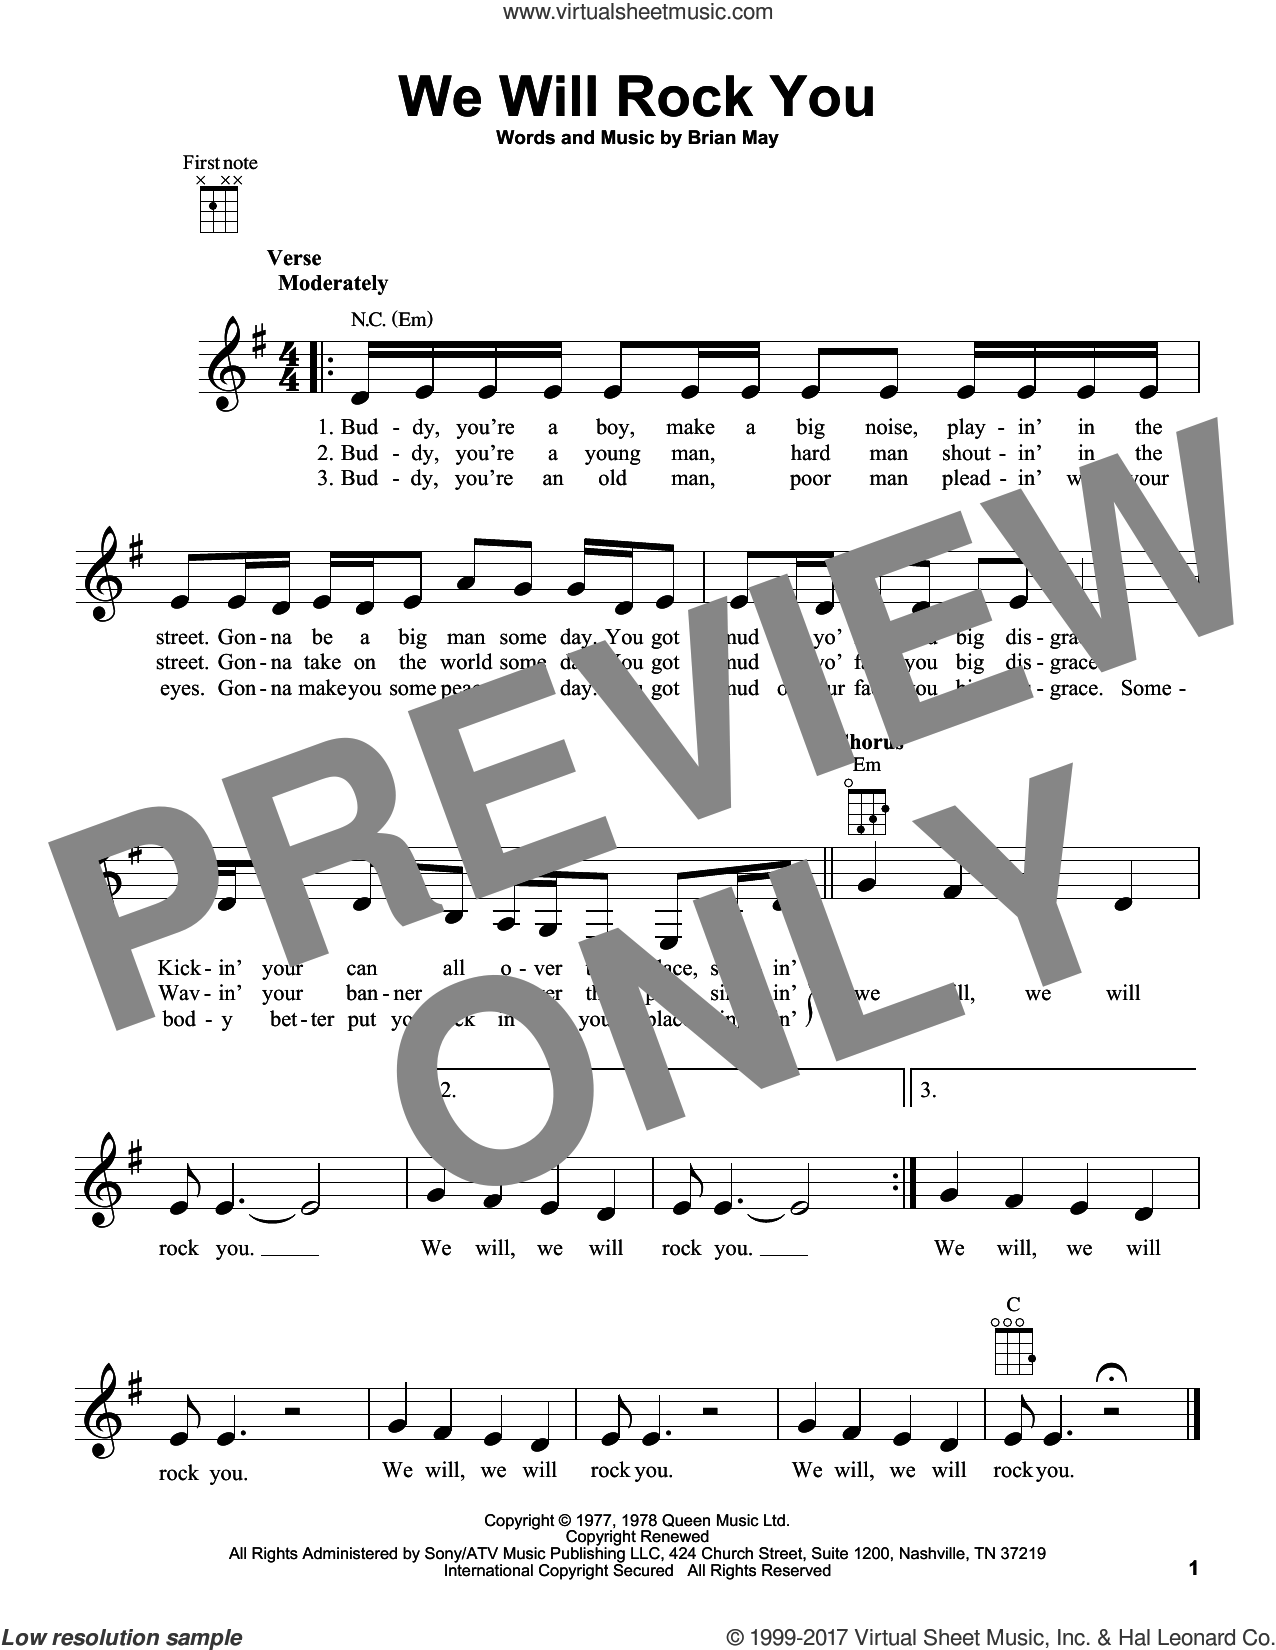 We Will Rock You sheet music for ukulele by Queen and Brian May, intermediate